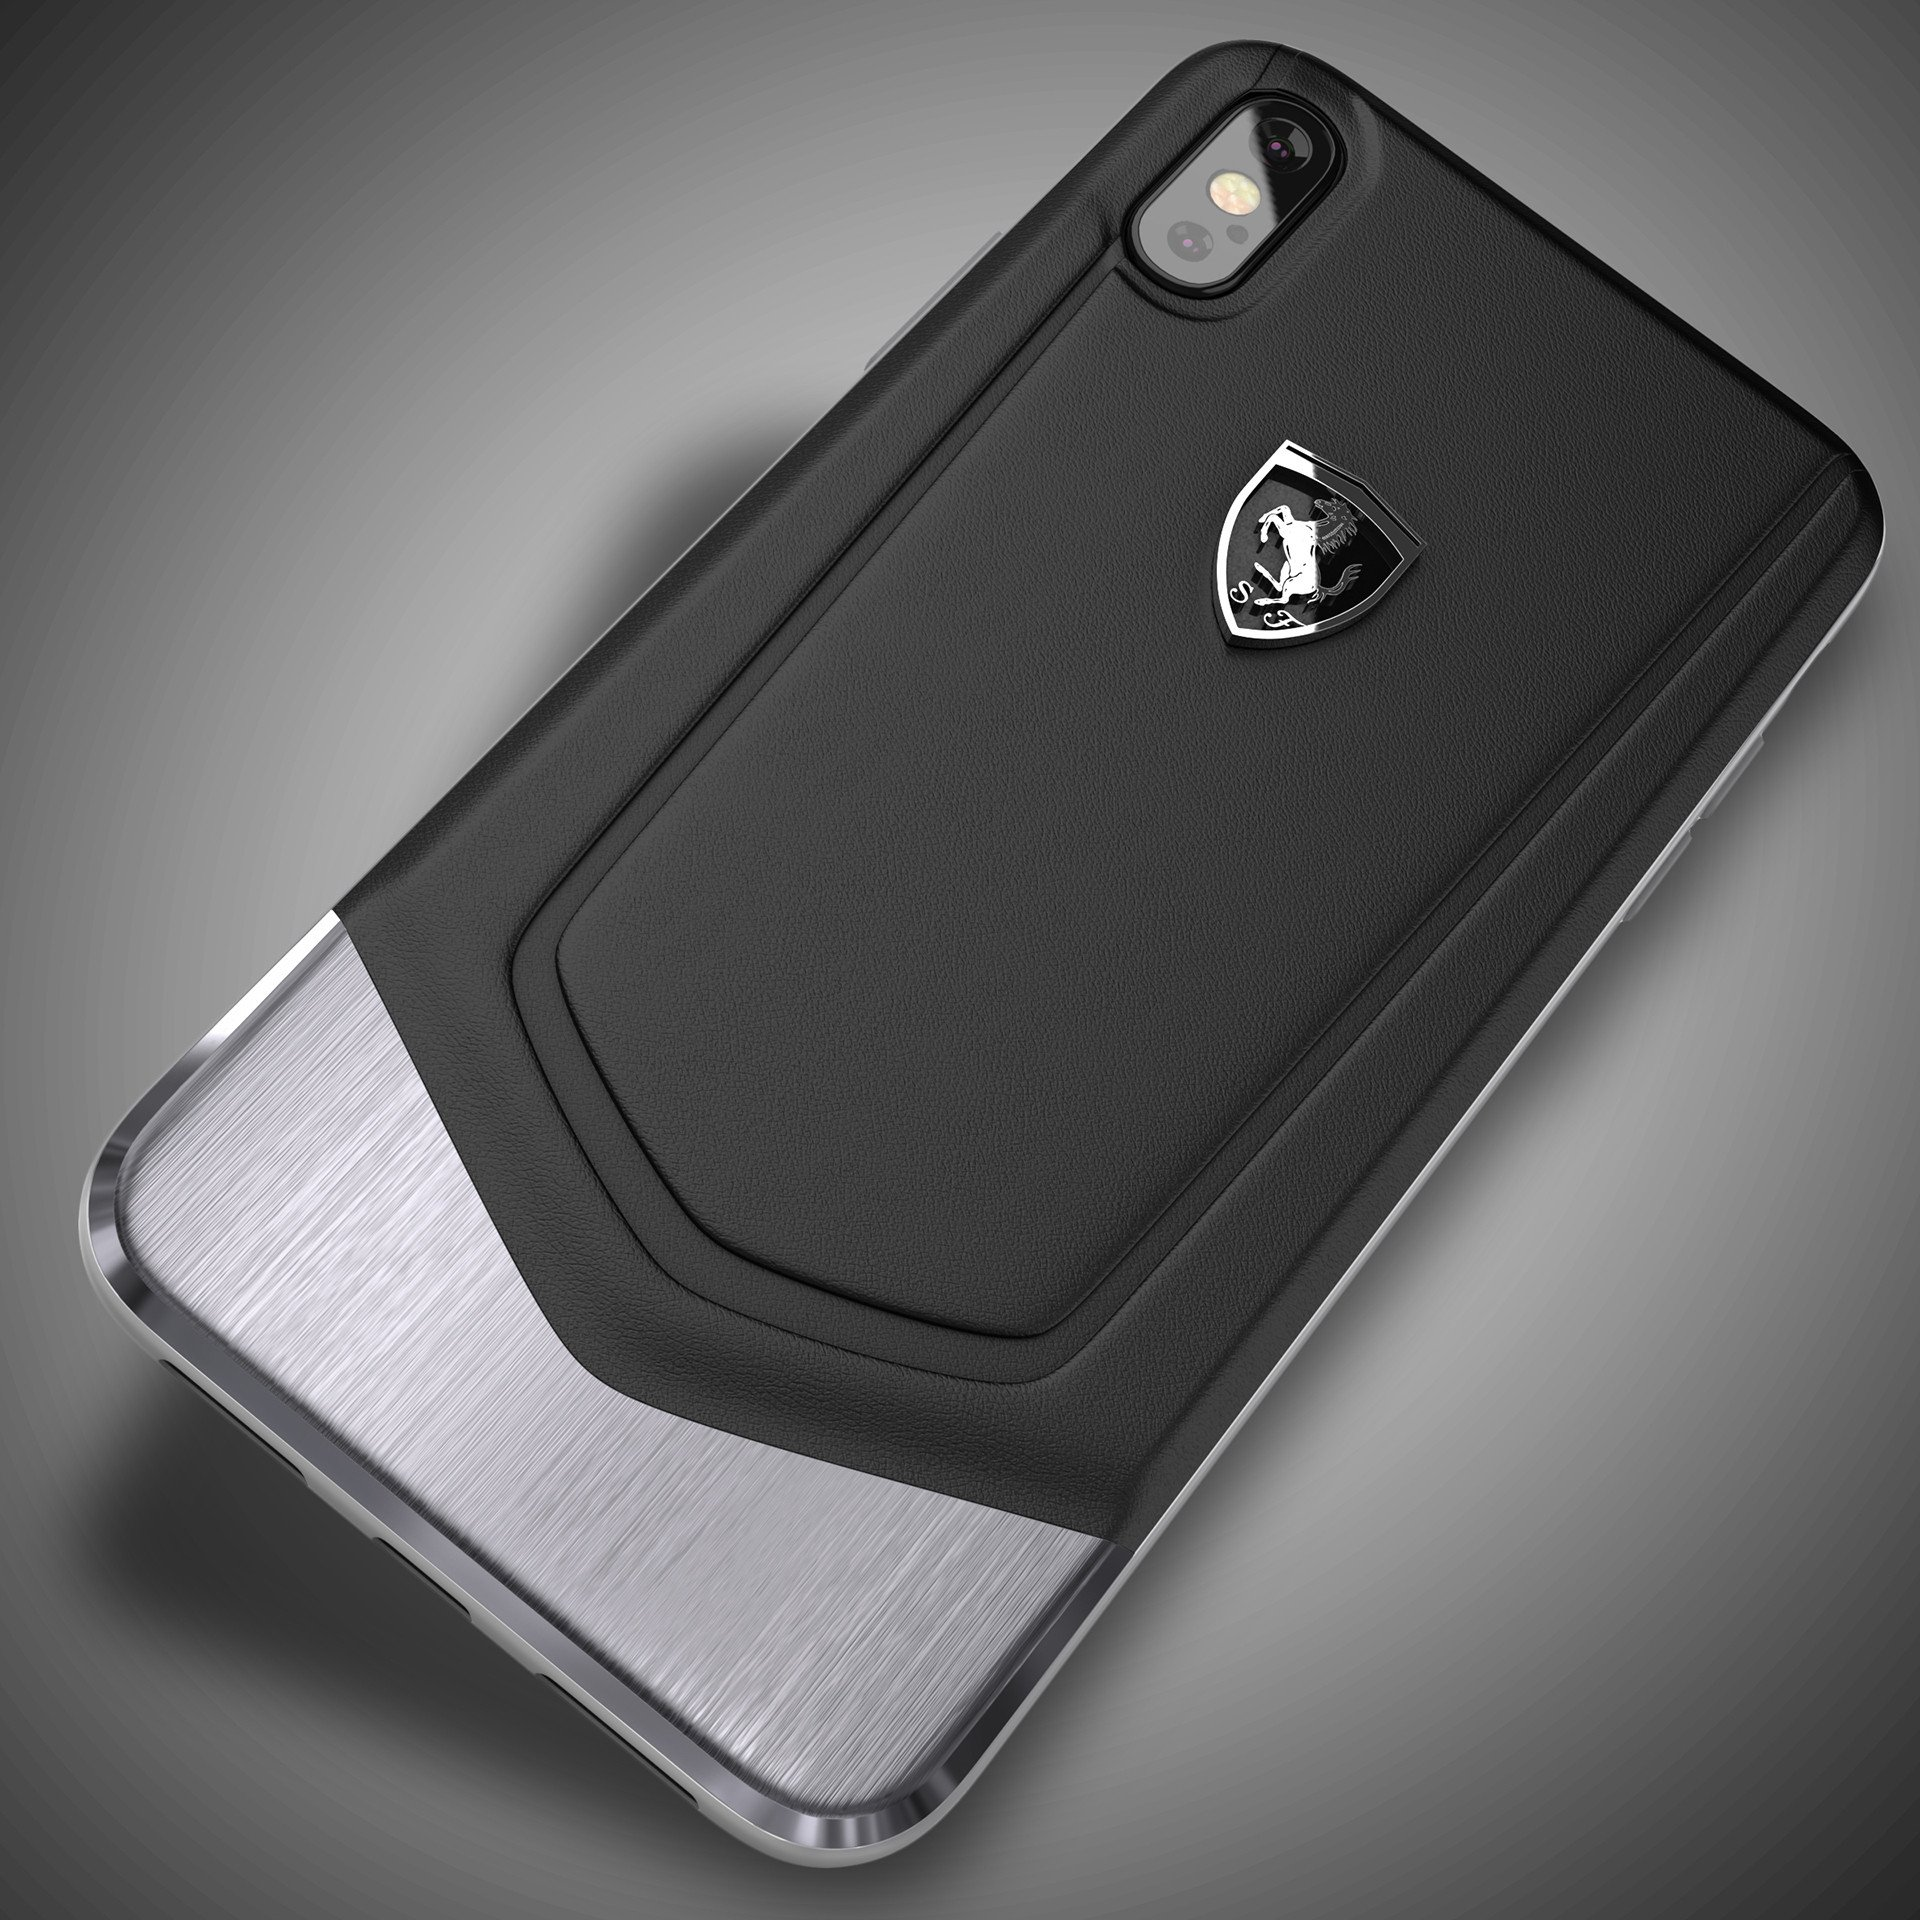 size 40 06a05 9fc01 Ferrari ® Apple iPhone X Moranello Series Luxurious Leather + Metal Case  Limited Edition Back Cover